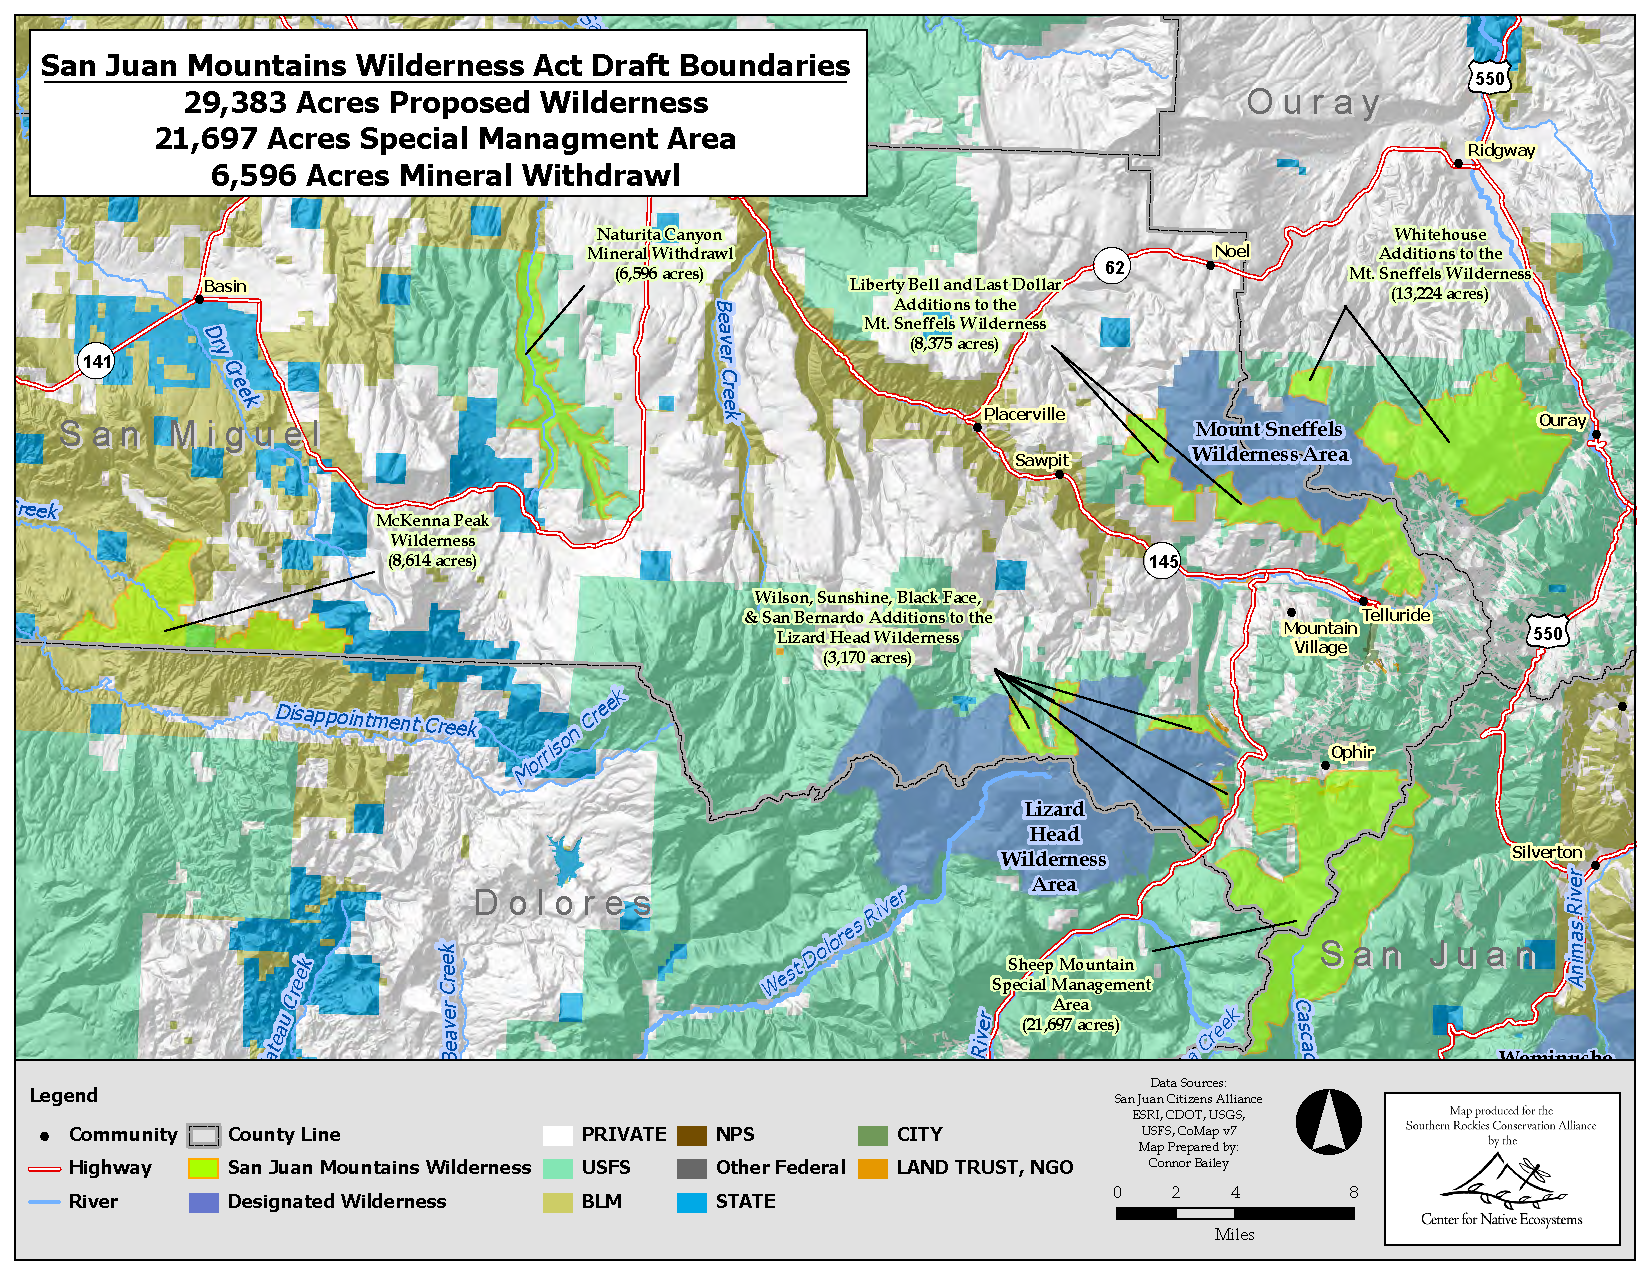 Overview Map of San Juan Mountains Wilderness Act